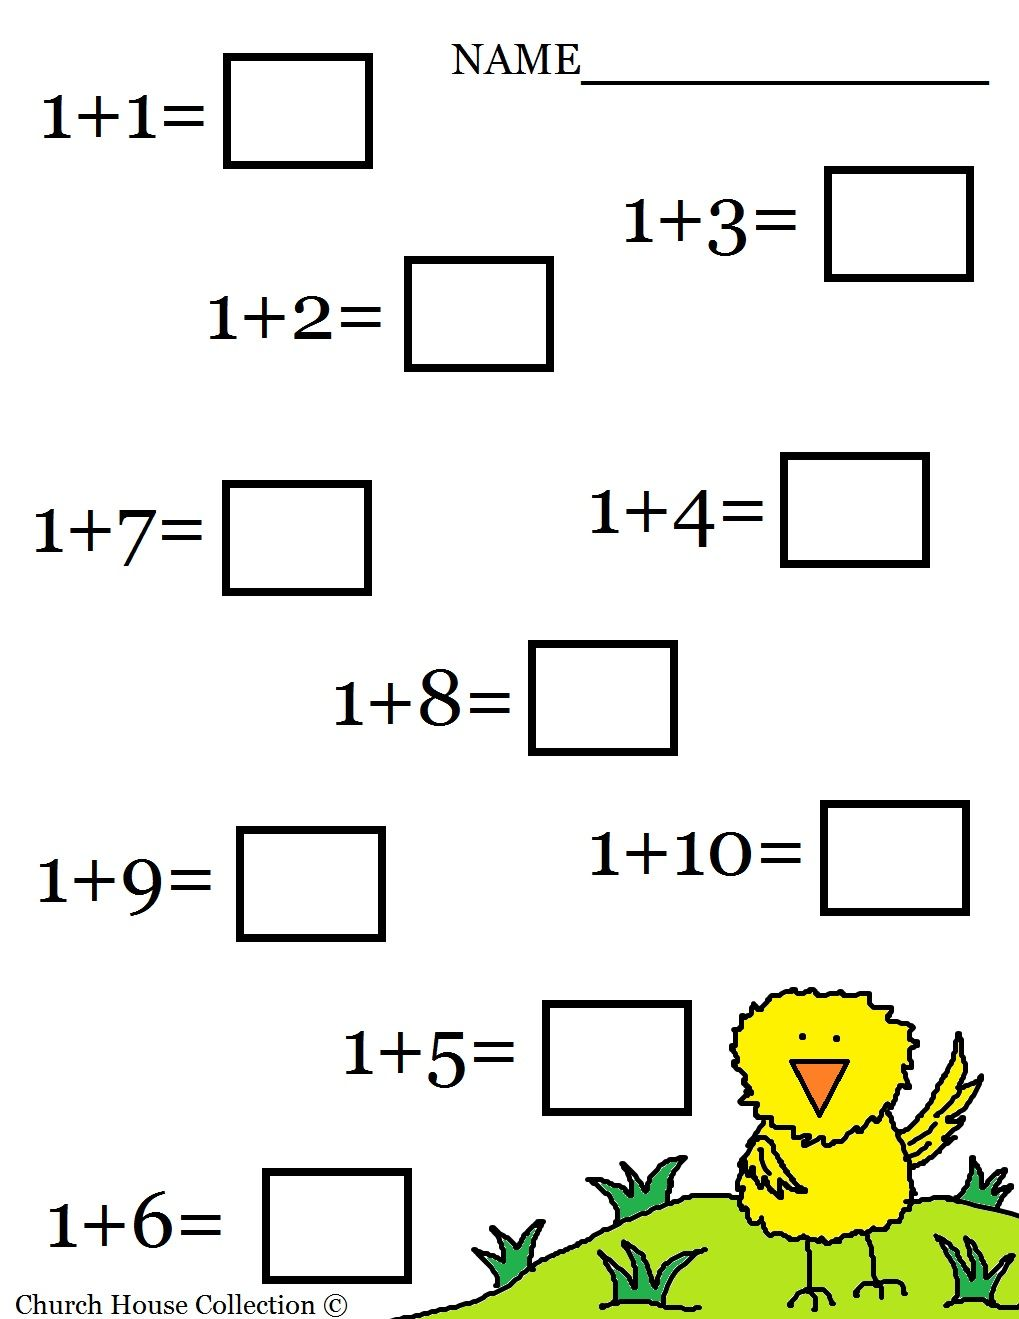 Aldiablosus  Pleasant  Images About Worksheets  Math On Pinterest  Math Sheets  With Remarkable  Images About Worksheets  Math On Pinterest  Math Sheets Math Worksheets For Kindergarten And Simple Addition With Attractive Easy Graphing Worksheets Also Math Worksheets For Teachers In Addition Writing A Friendly Letter Worksheet And Free Printable Word Family Worksheets As Well As Worksheet Combining Like Terms Additionally Deductions Worksheet From Pinterestcom With Aldiablosus  Remarkable  Images About Worksheets  Math On Pinterest  Math Sheets  With Attractive  Images About Worksheets  Math On Pinterest  Math Sheets Math Worksheets For Kindergarten And Simple Addition And Pleasant Easy Graphing Worksheets Also Math Worksheets For Teachers In Addition Writing A Friendly Letter Worksheet From Pinterestcom